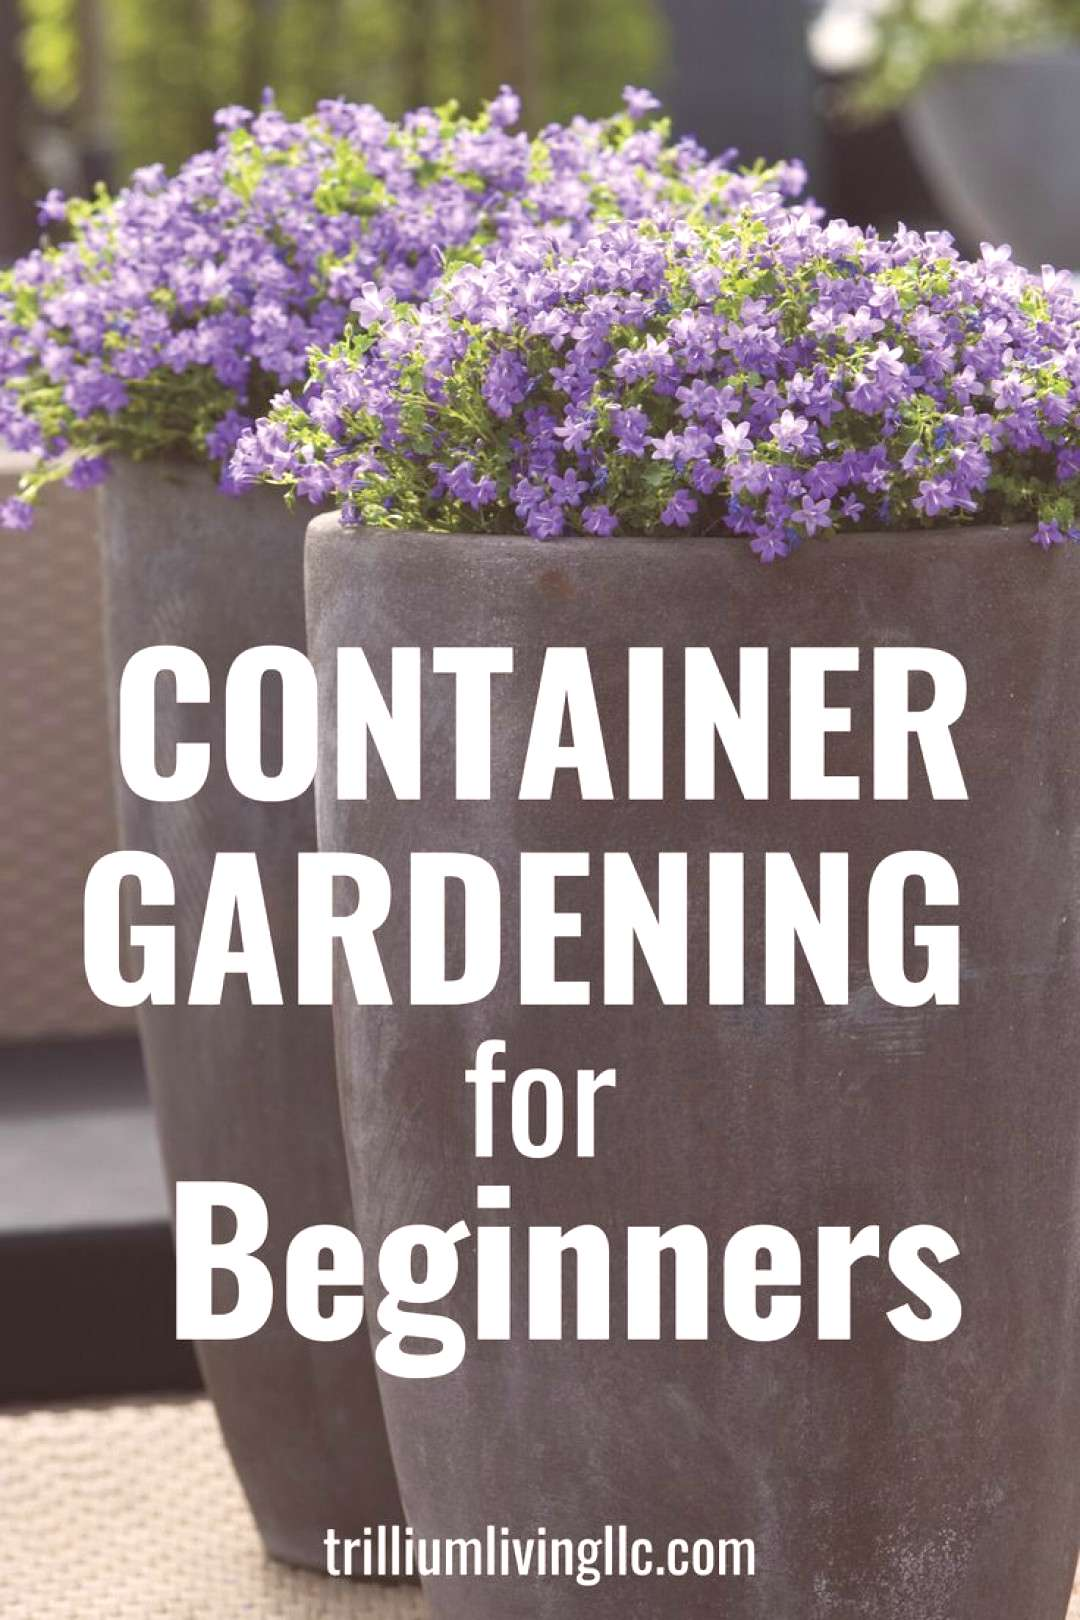 Container Gardening for Beginners -  Container gardening is a great way to decorate your deck, pati